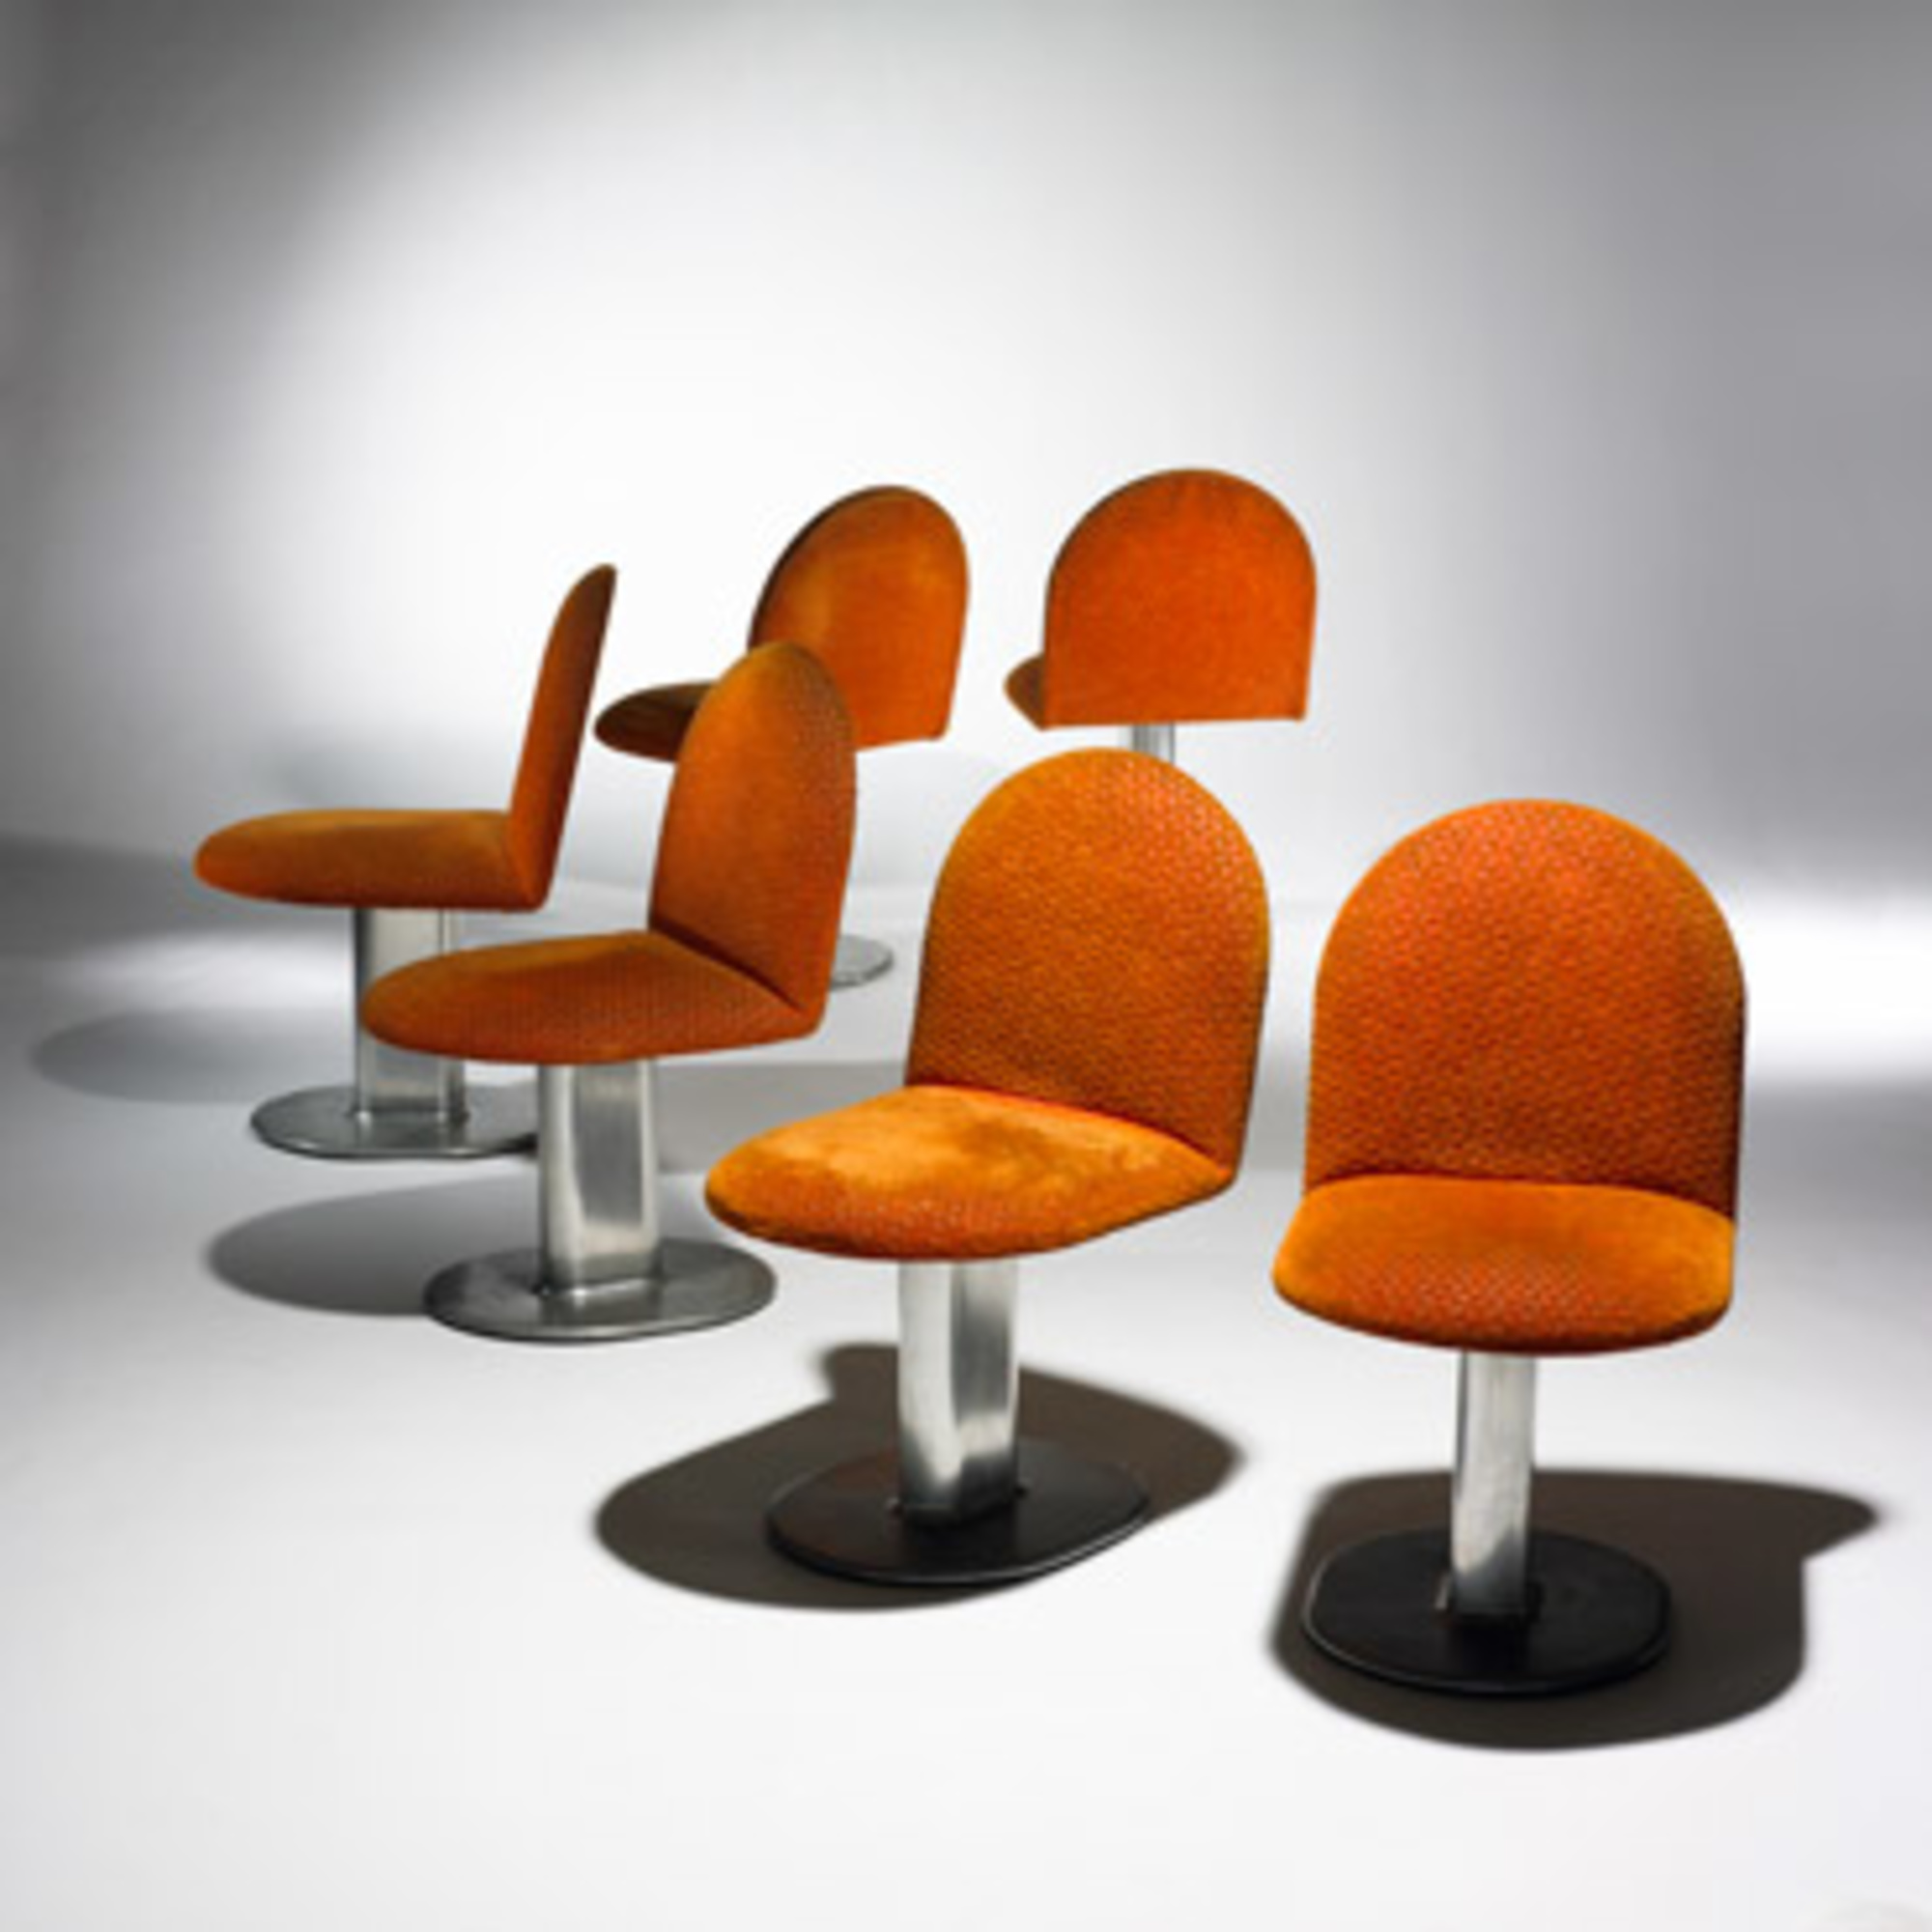 Superb 664 Ettore Sottsass Harlow Dining Chairs Set Of Six Unemploymentrelief Wooden Chair Designs For Living Room Unemploymentrelieforg